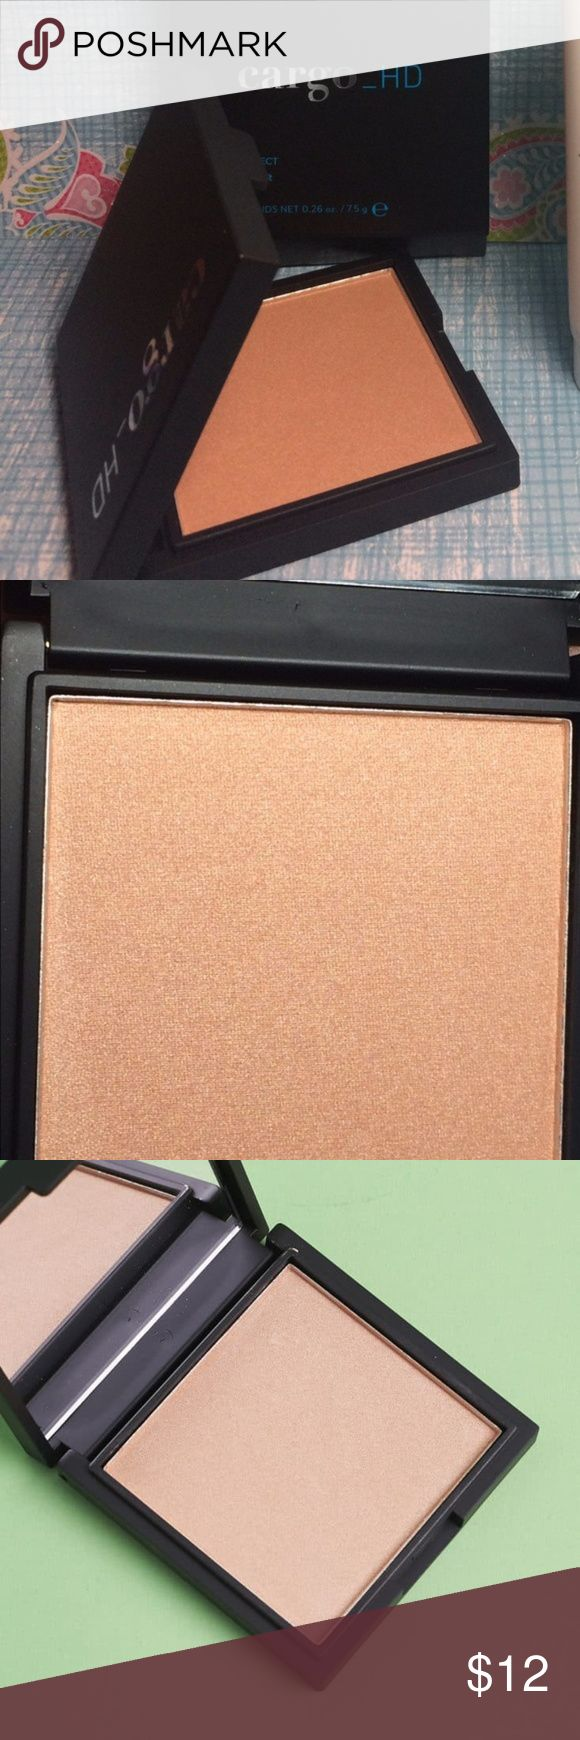 Cargo HD Highlighter in Bronze NIB from FabFitFun Formulated for high definition filming, Cargo_HD Highlighter in Bronze contains specialized photochromatic pigments that reflect light to provide a radiant picture perfect finish. Cargo Makeup